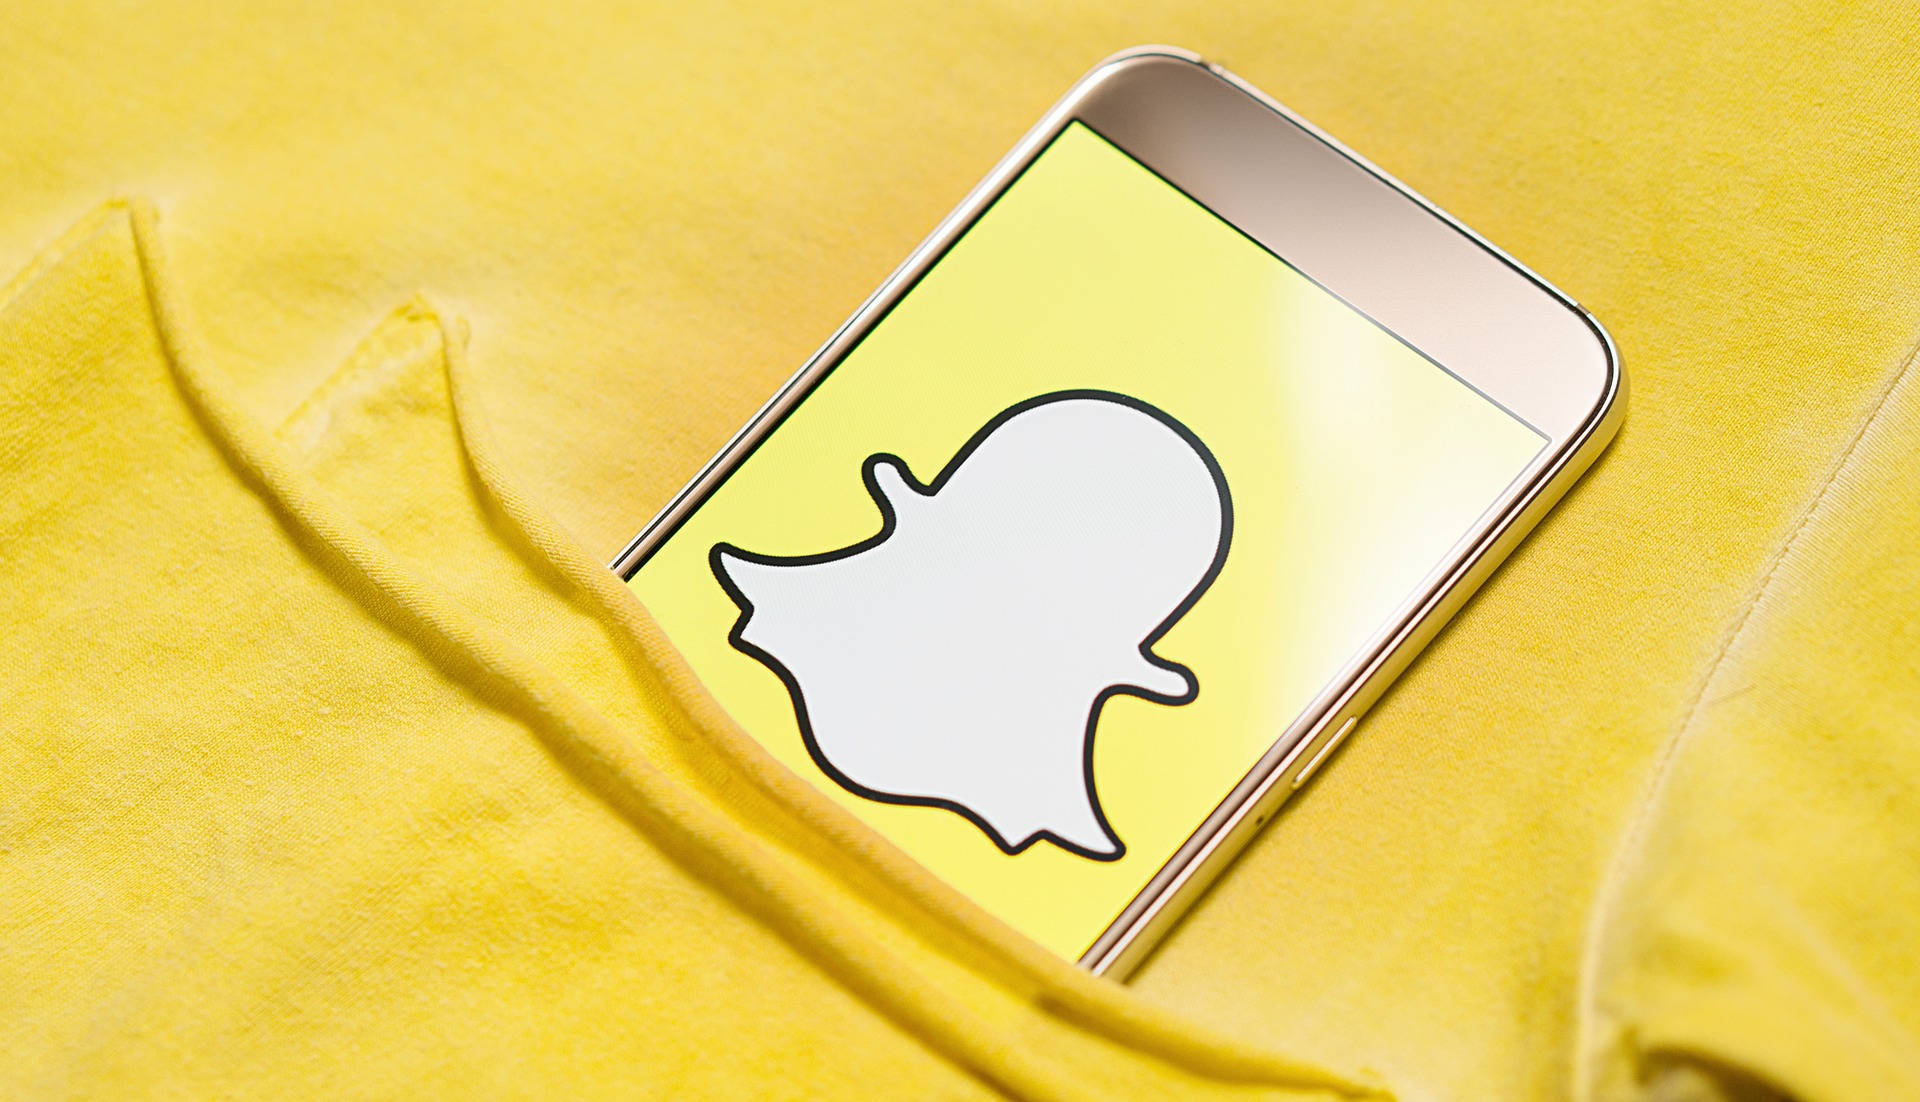 Snapchat is forcing people to ditch their profile selfies for